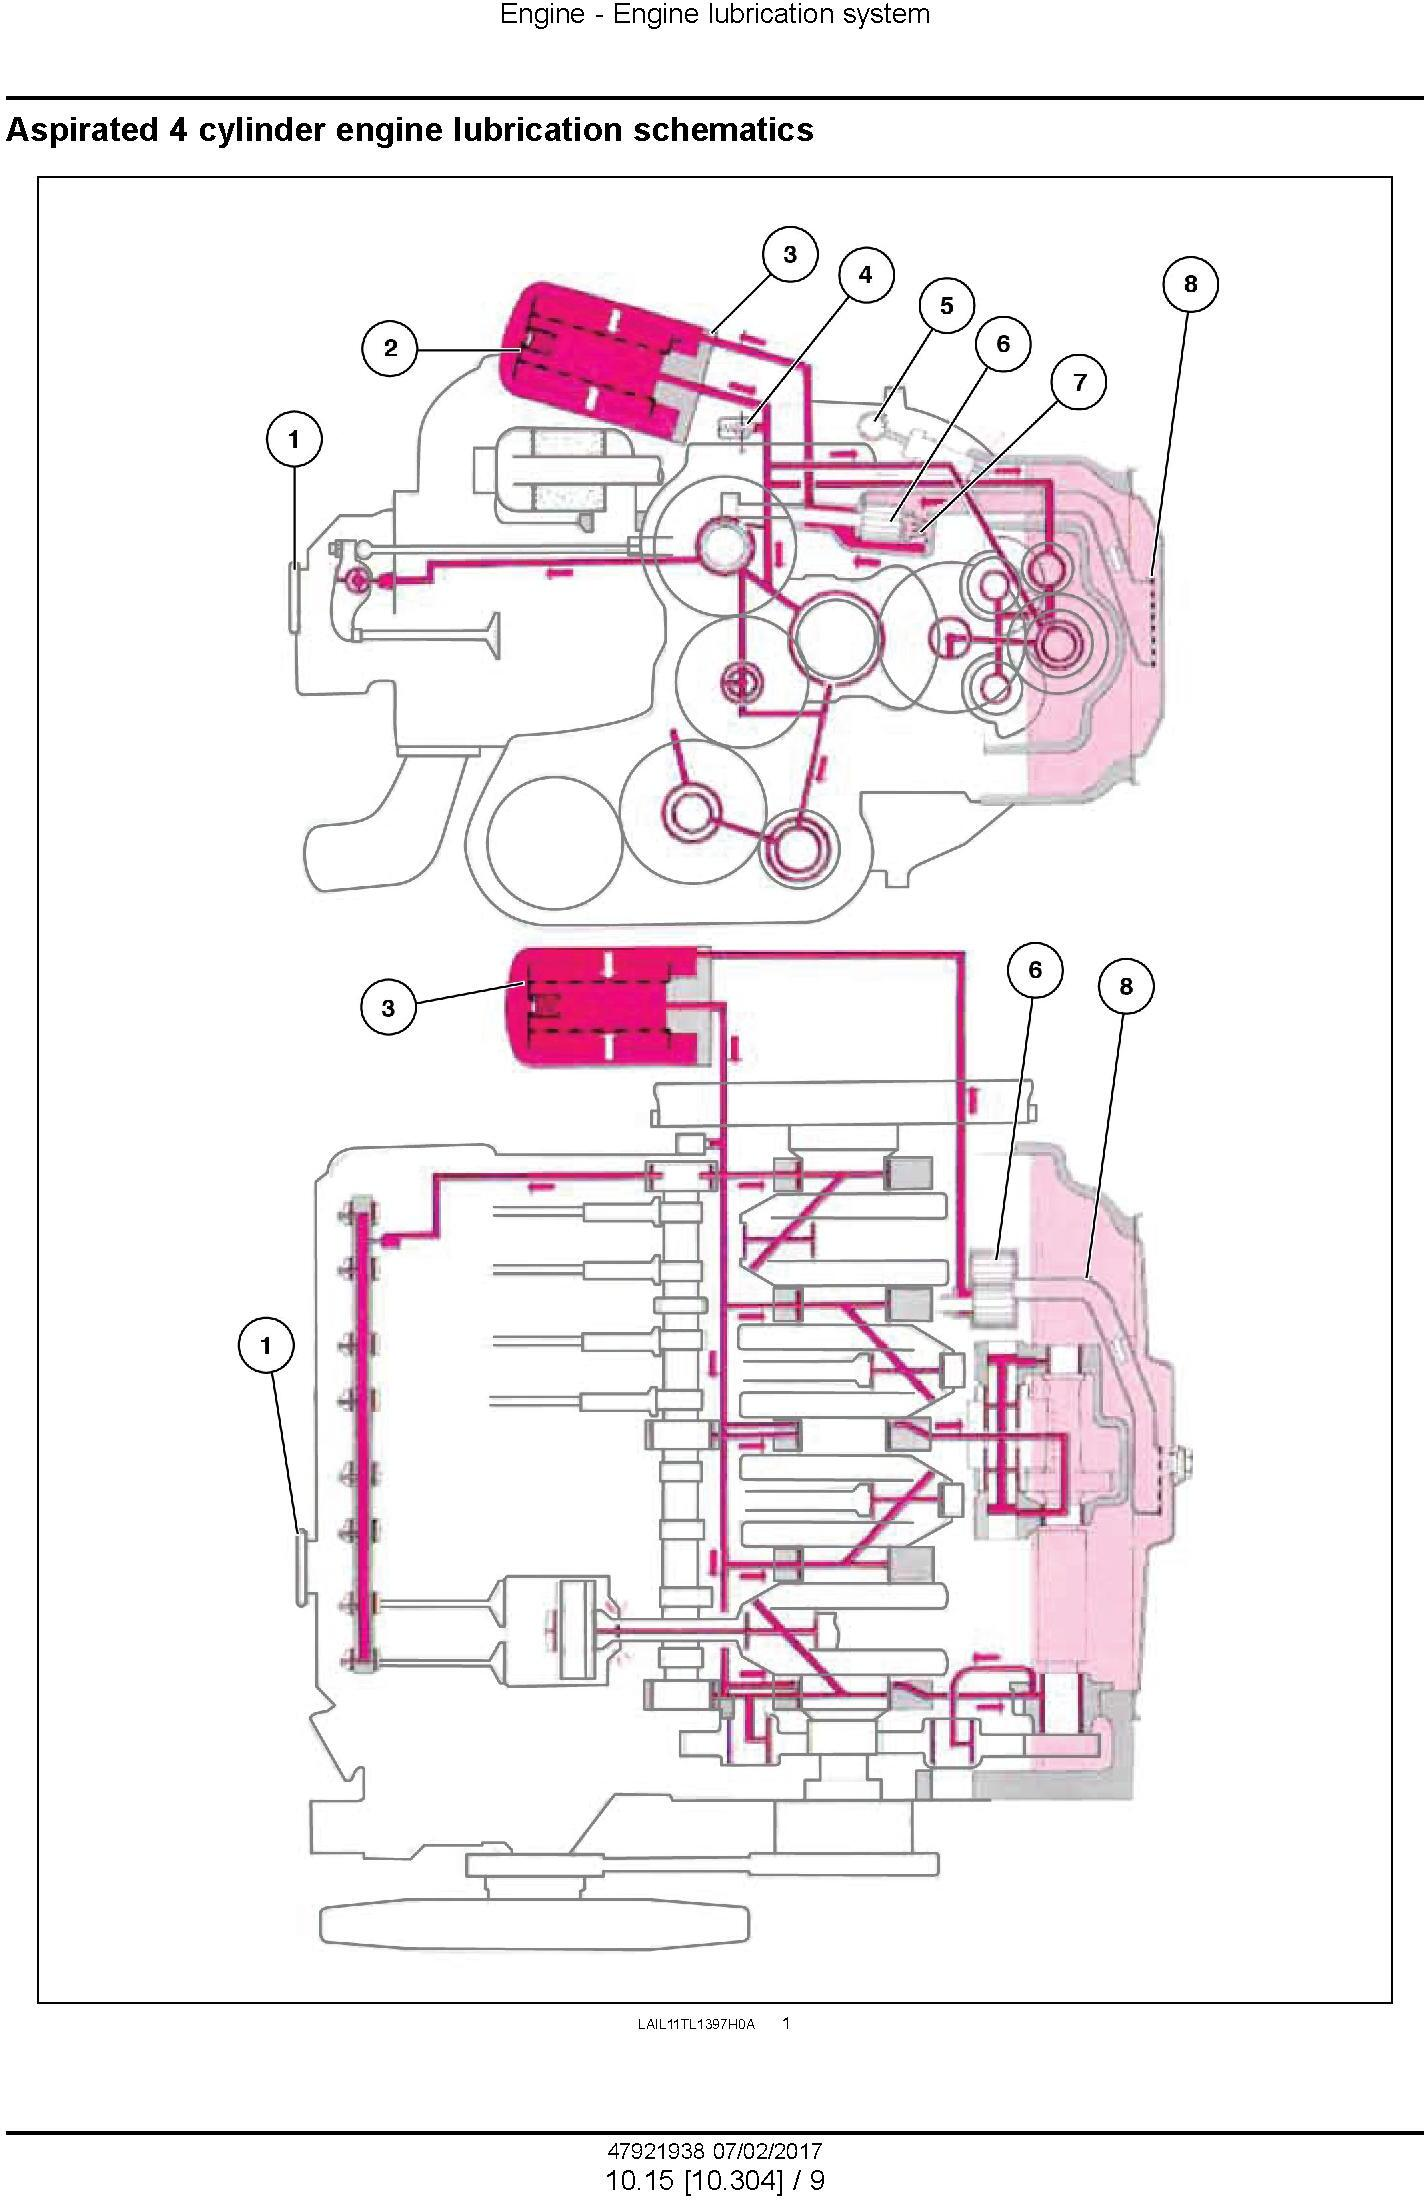 New Holland TT3840, TT3840F, TT4030, TT3880F Tractor Service Manual (Latin America) - 2